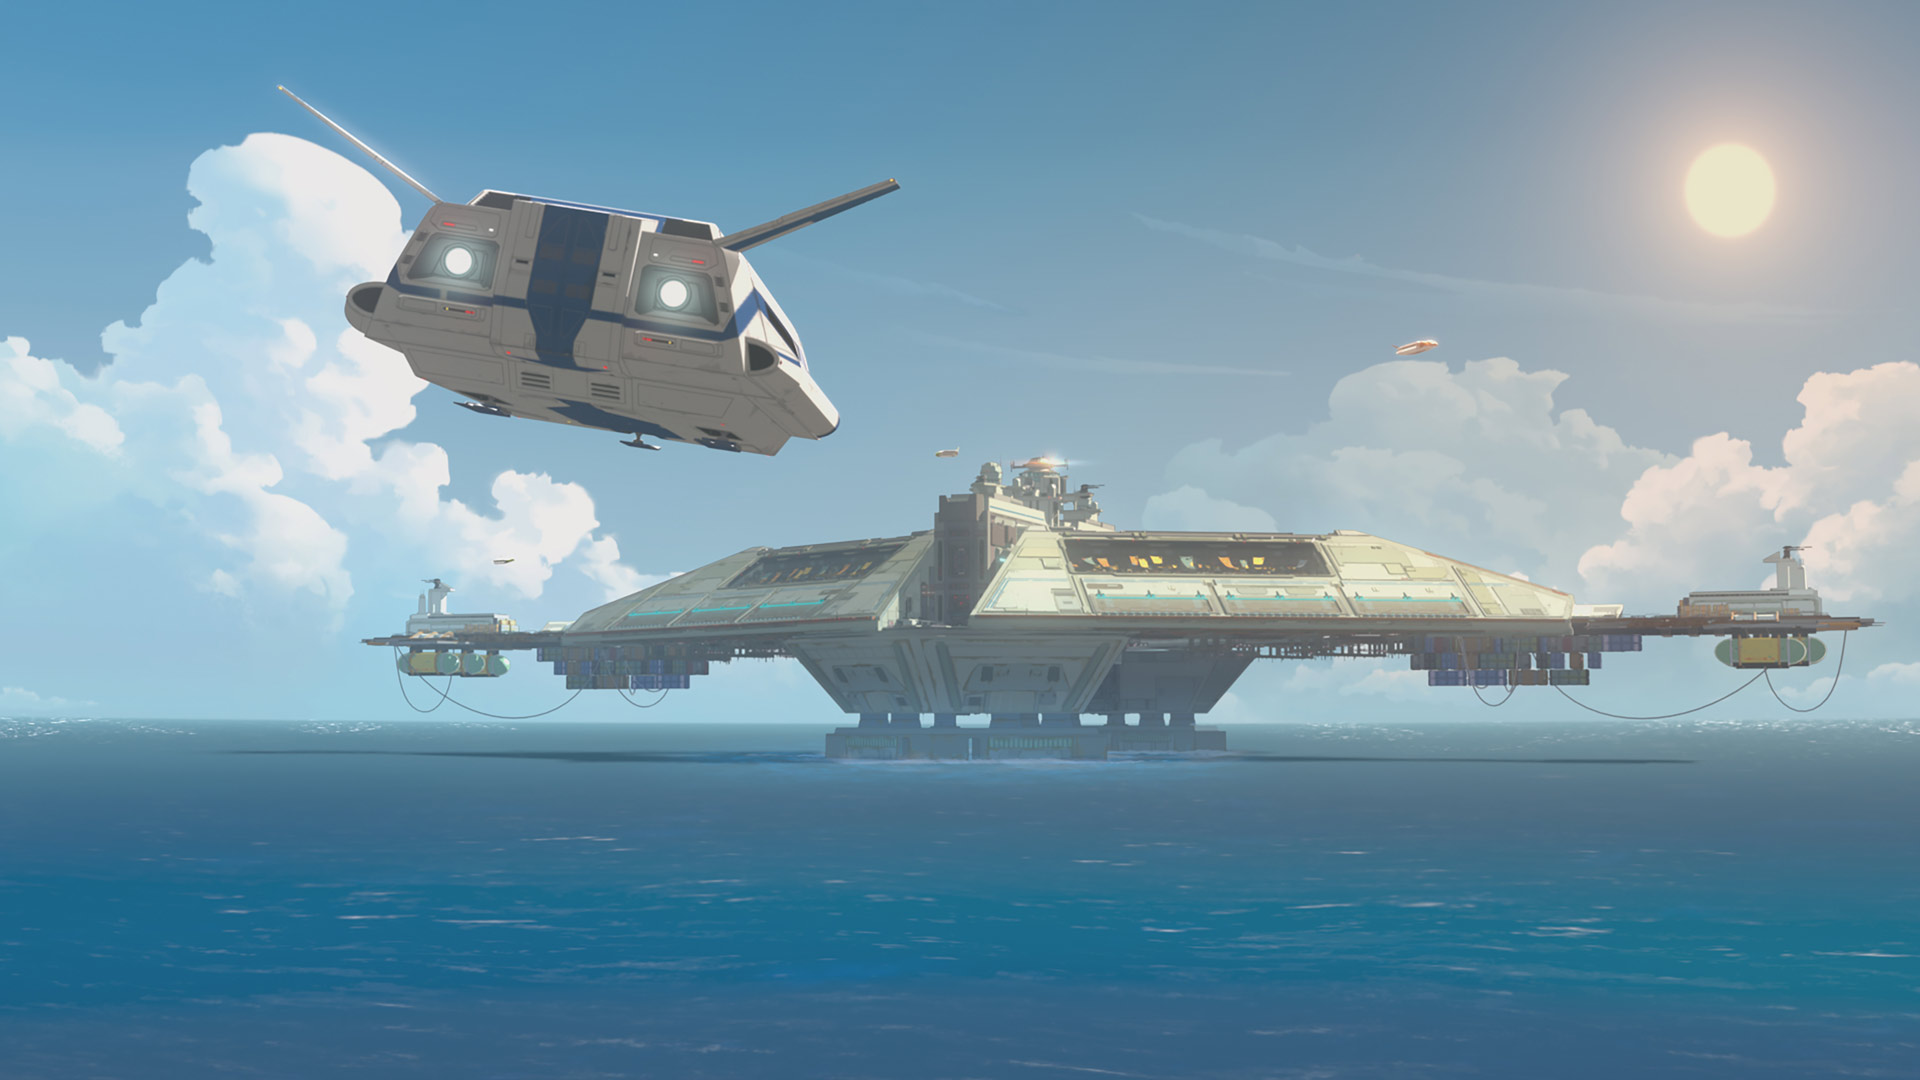 The Colossus in Star Wars Resistance.